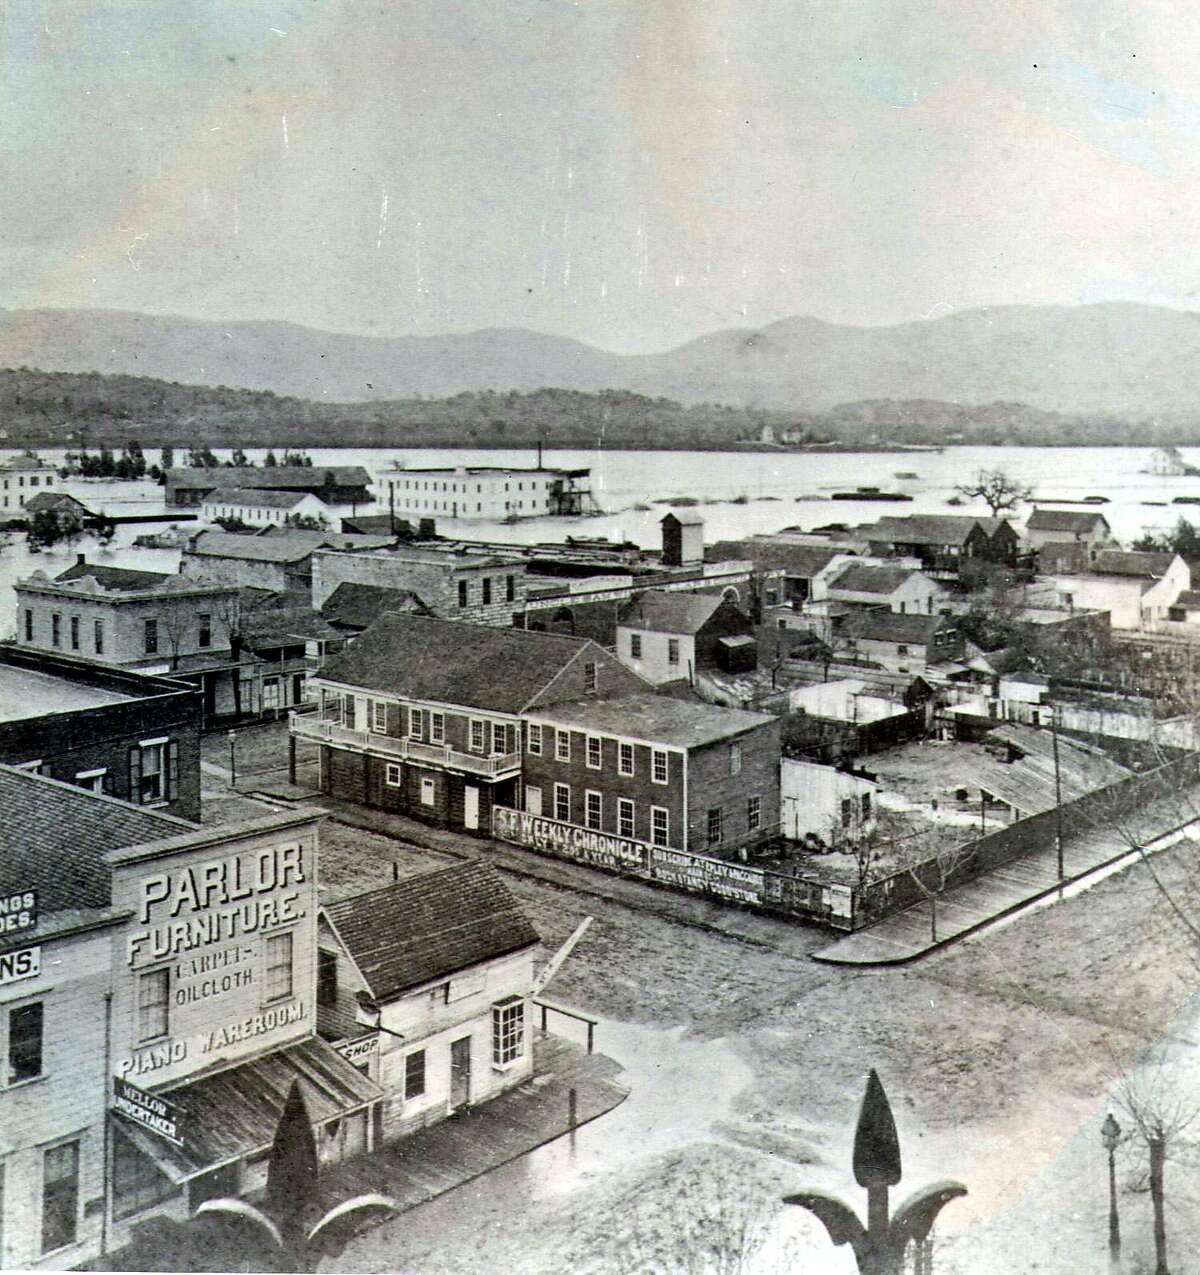 The view from the third floor of the Napa County Courthouse in 1900.